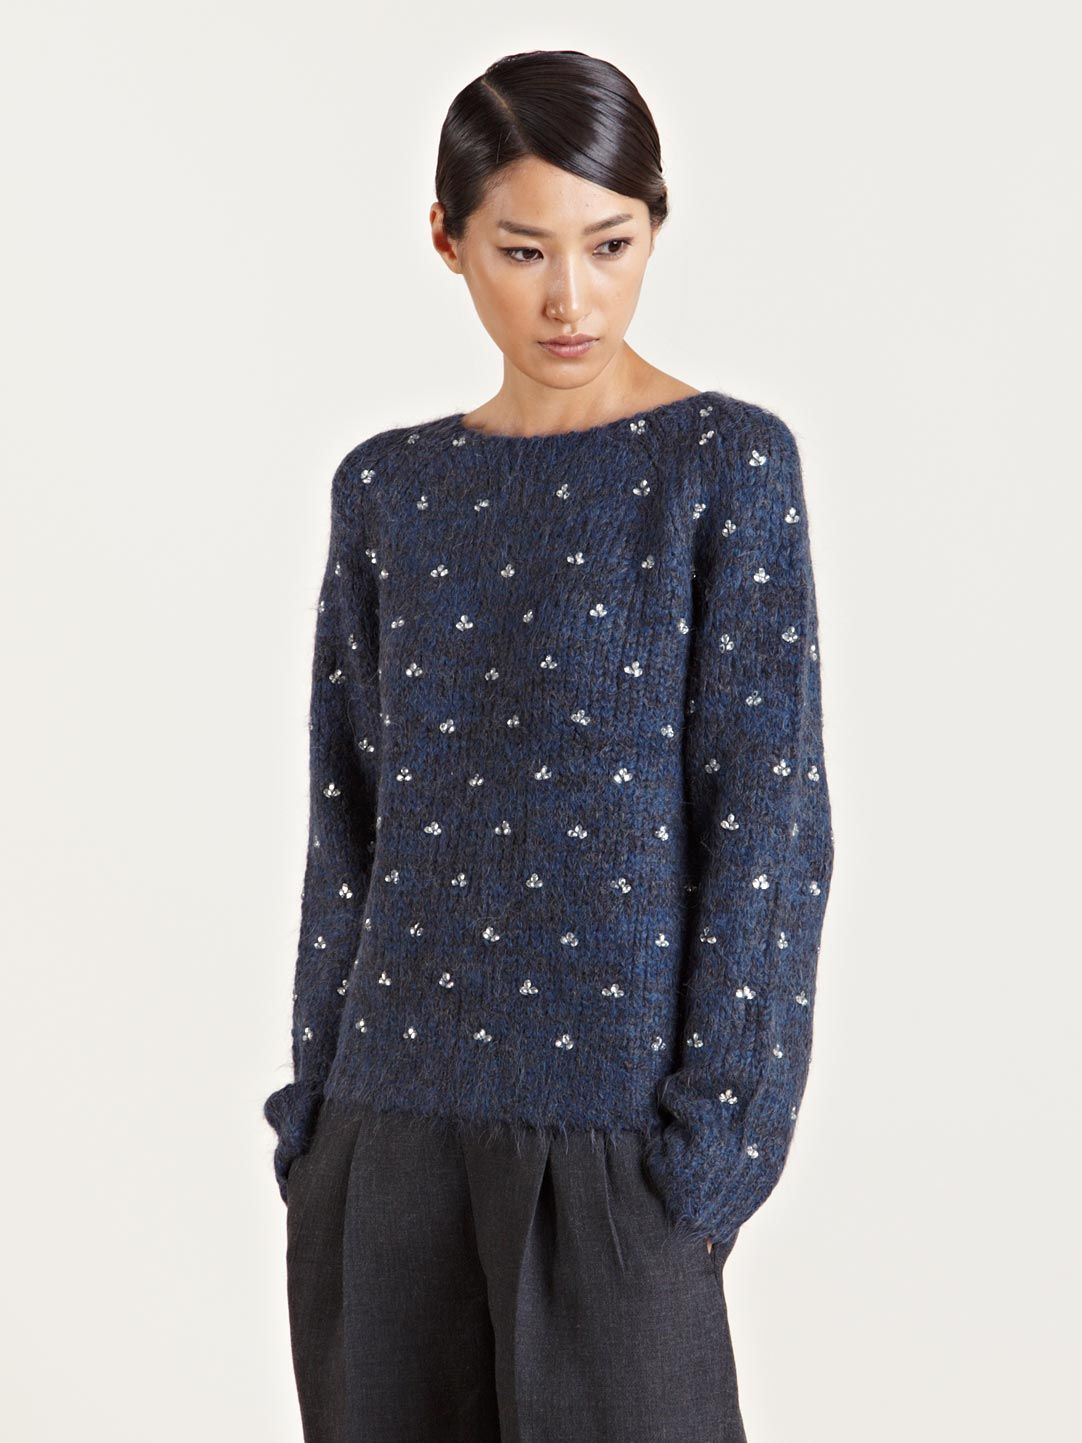 Dries Van Noten Women's Tairana Alpaca Sweater | knitspiration ...